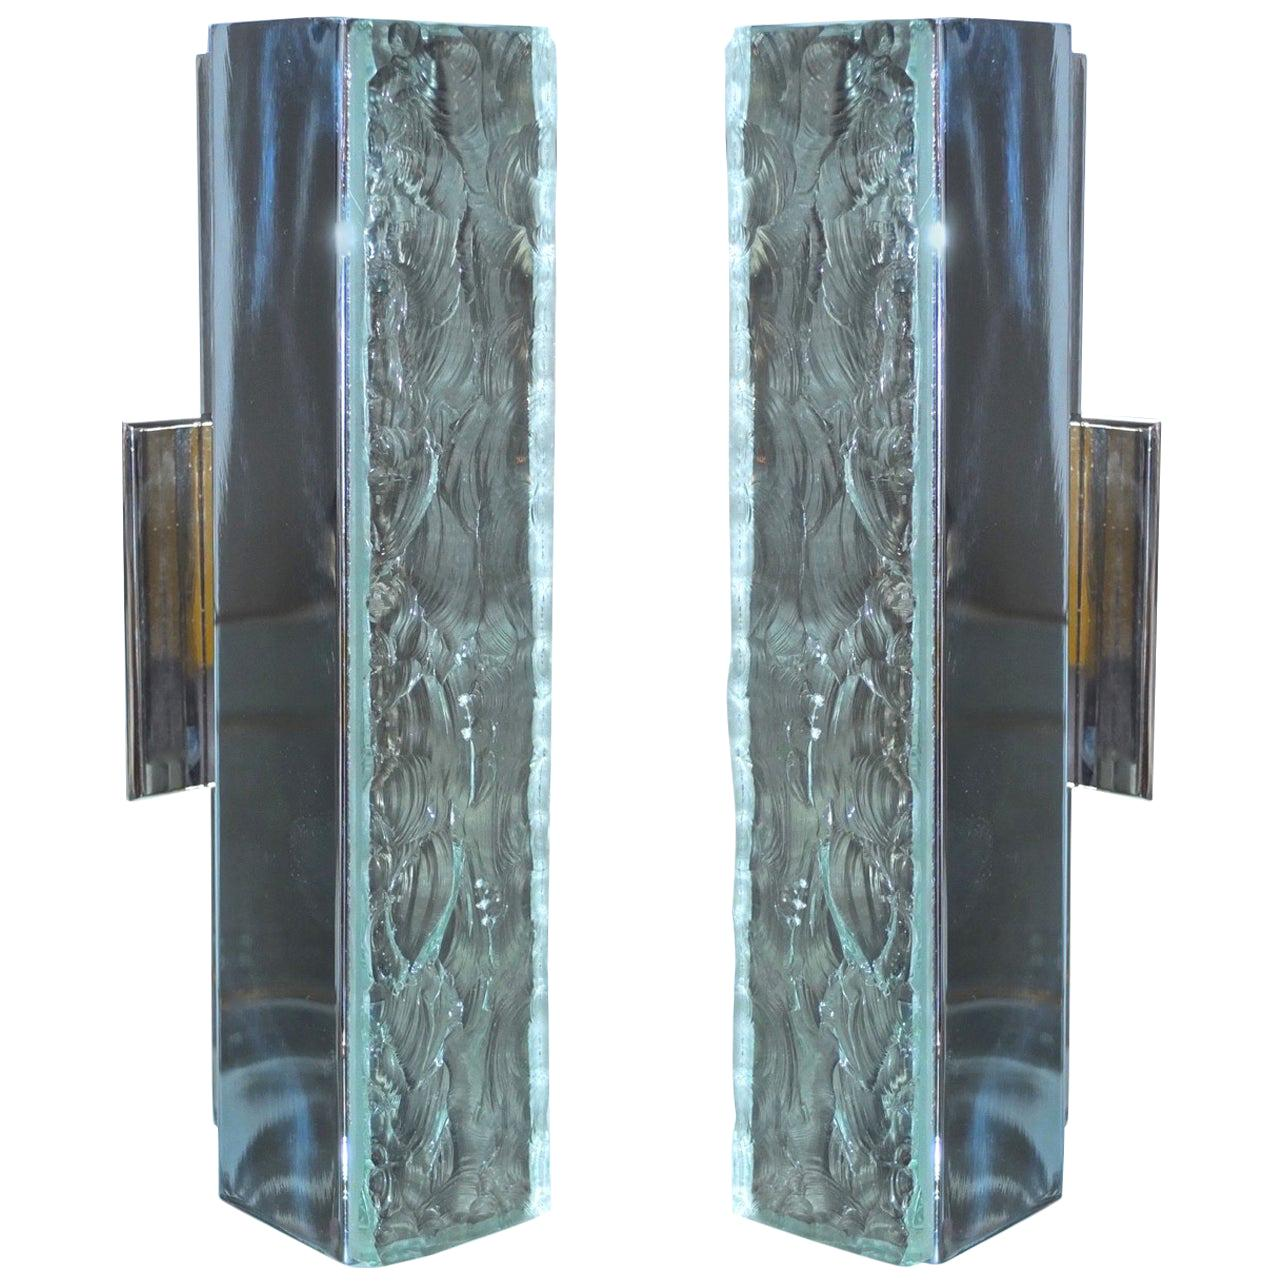 Pair of Max Ingrand for Fontana Arte #2368 Chiseled Glass & Nickel Wall Sconces